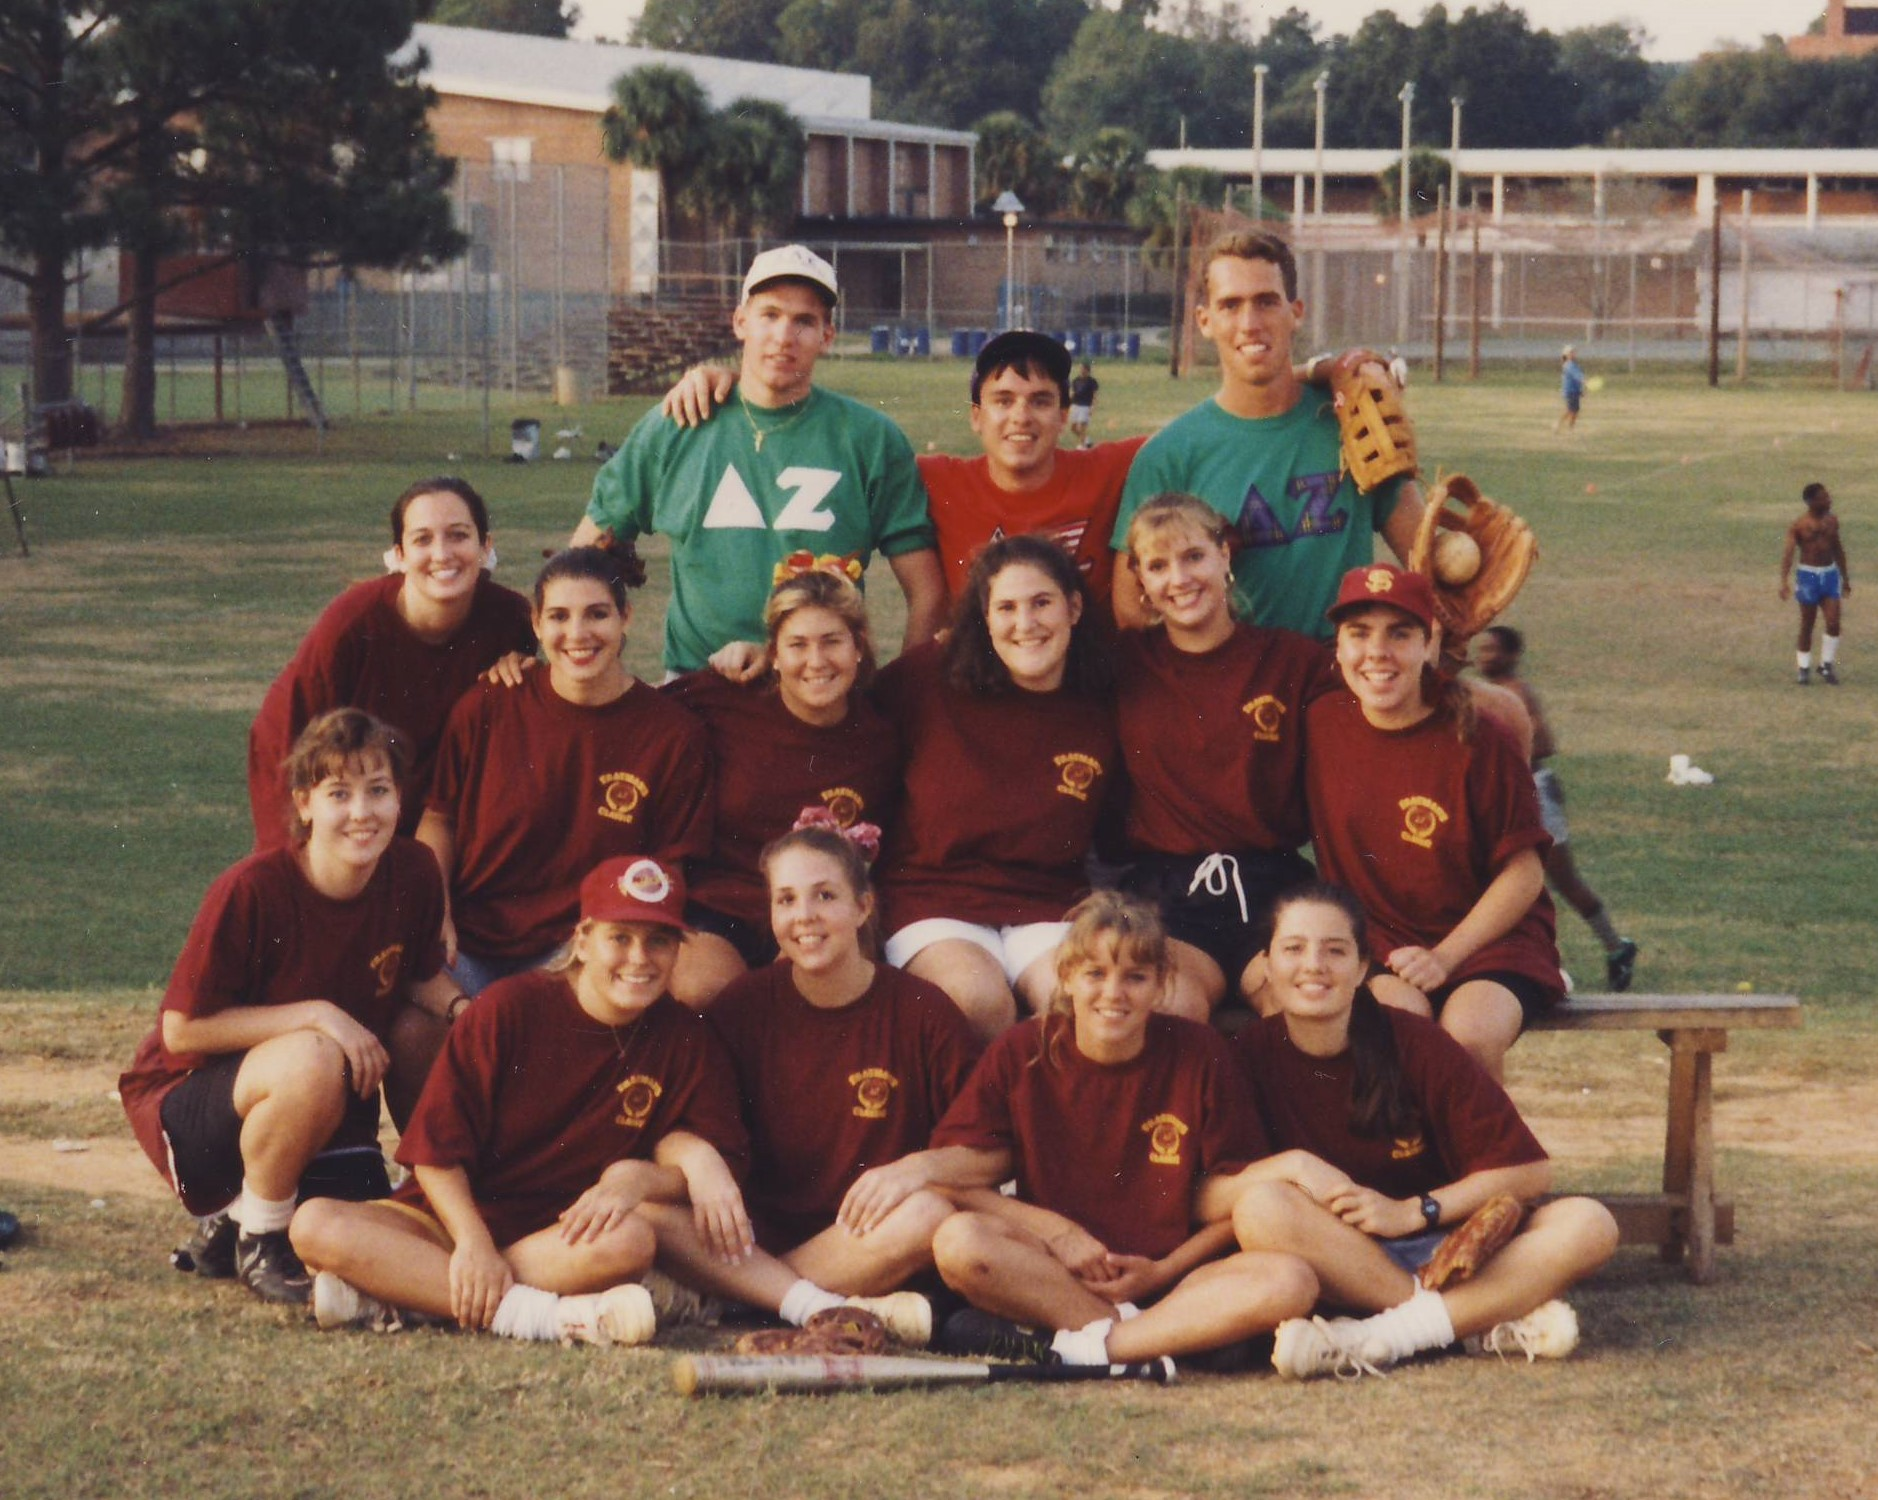 1993 Field of Dreams-team DZ.JPG